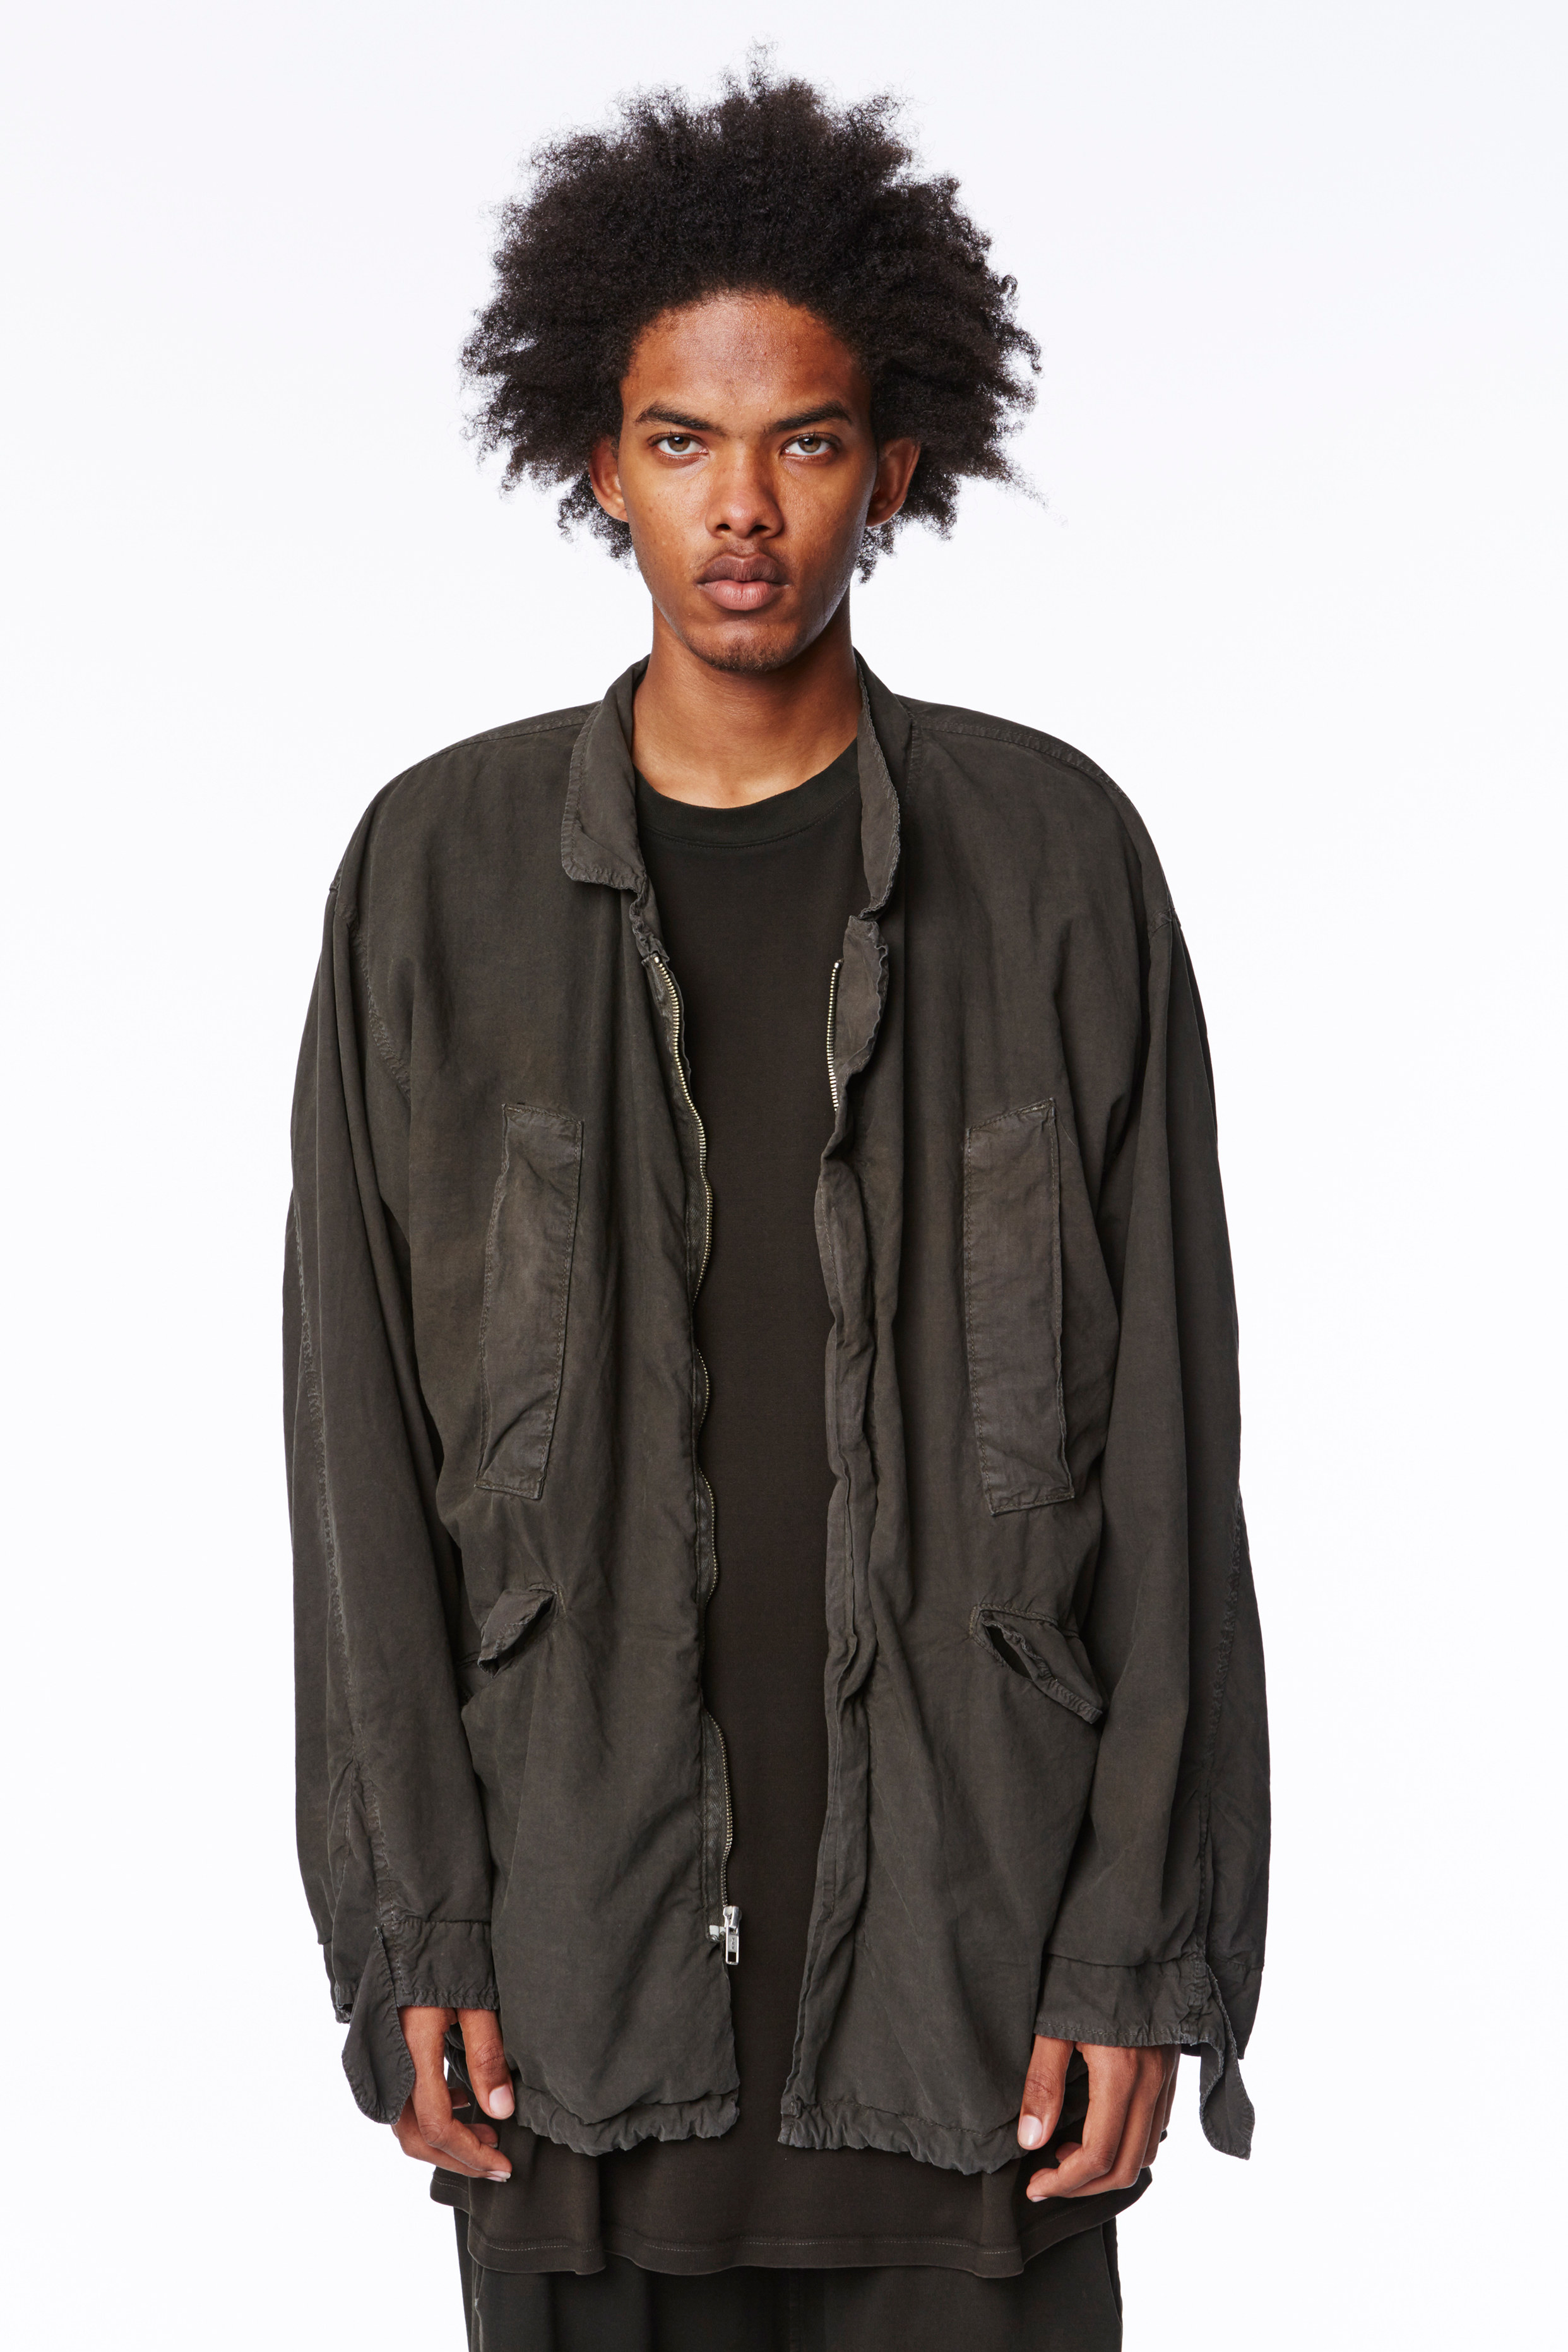 3747a42a1f2 Yeezy Season 2 was a lot like Yeezy Season 1. As he did for his fall  launch